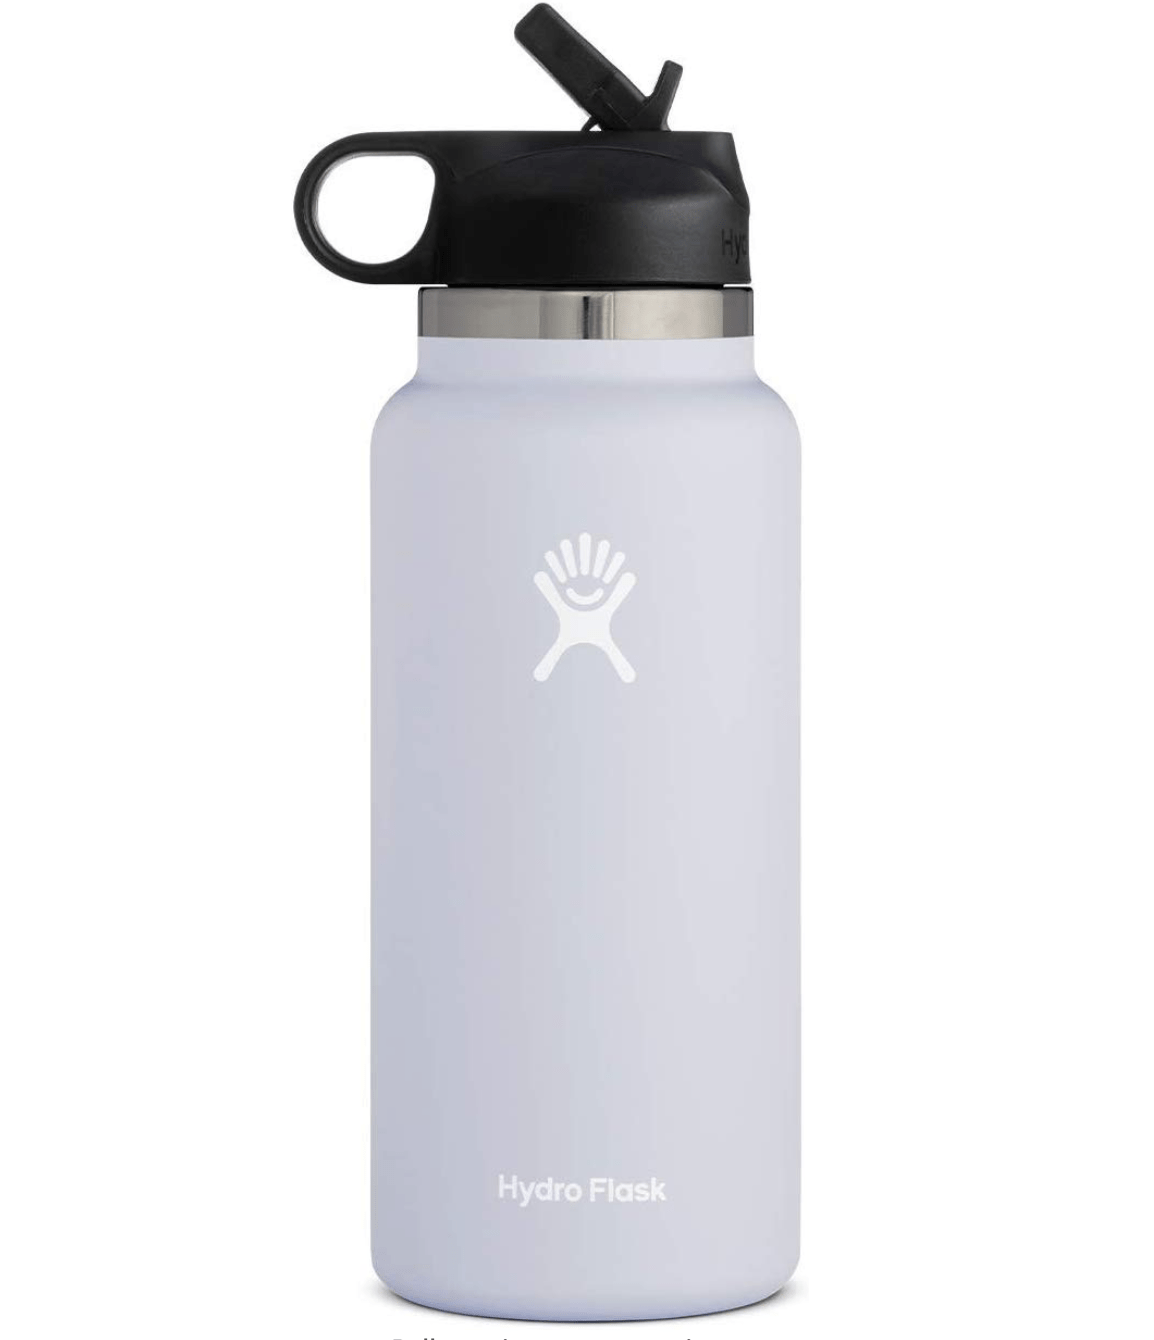 A new HydroFlask